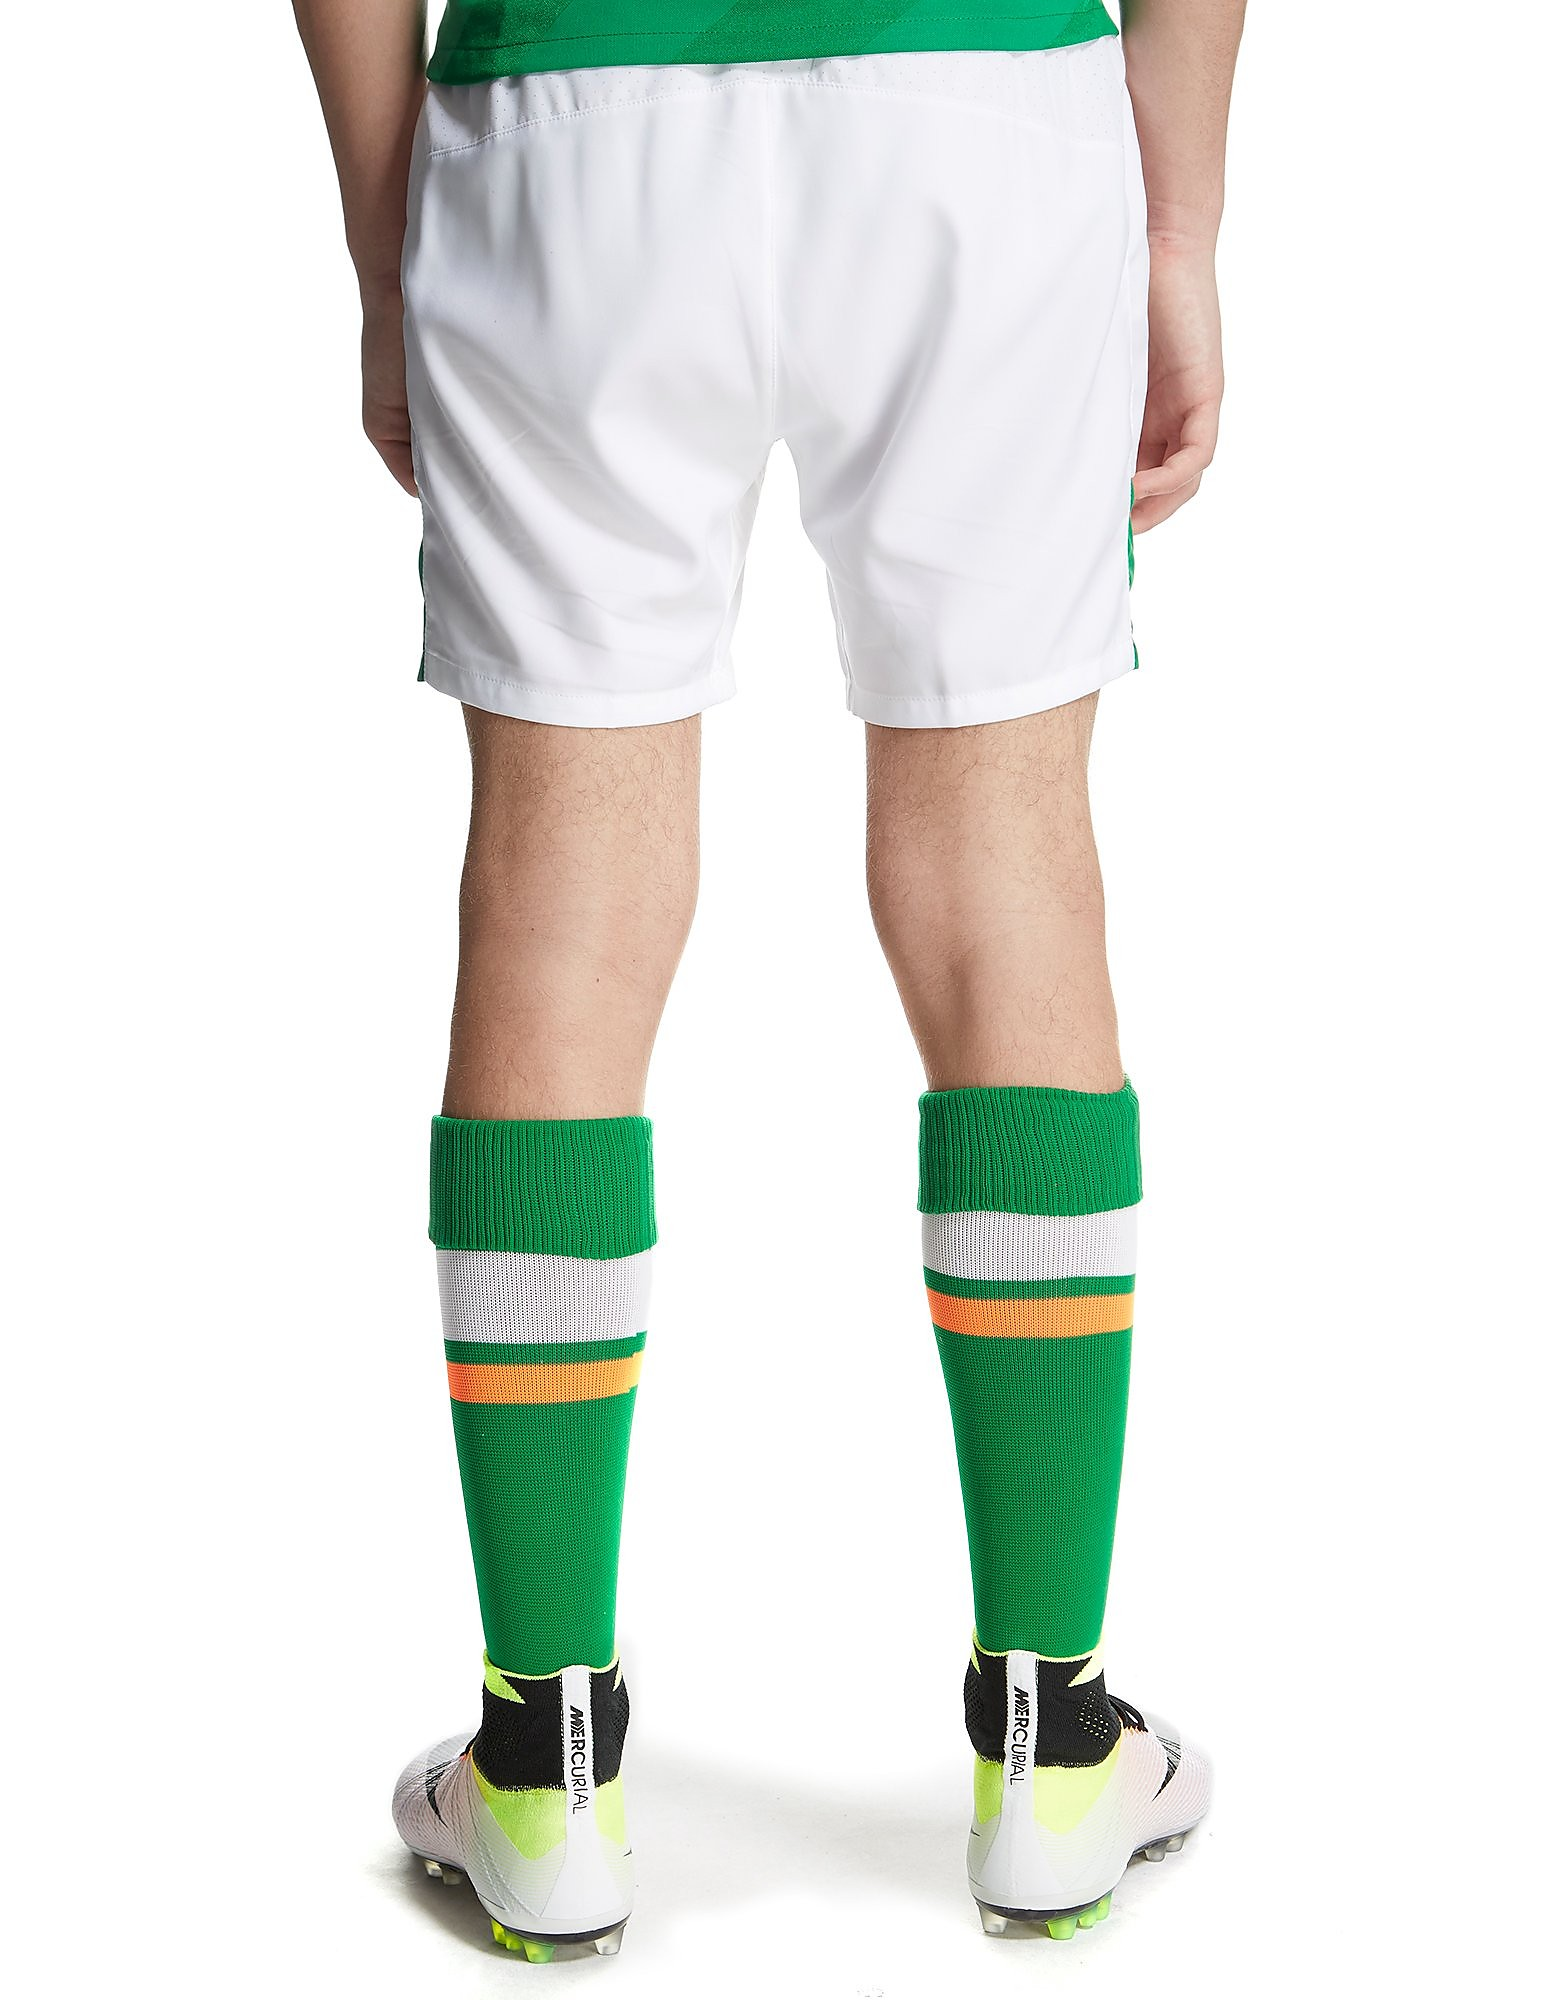 Umbro Republic of Ireland 2016 Home Socks Junior